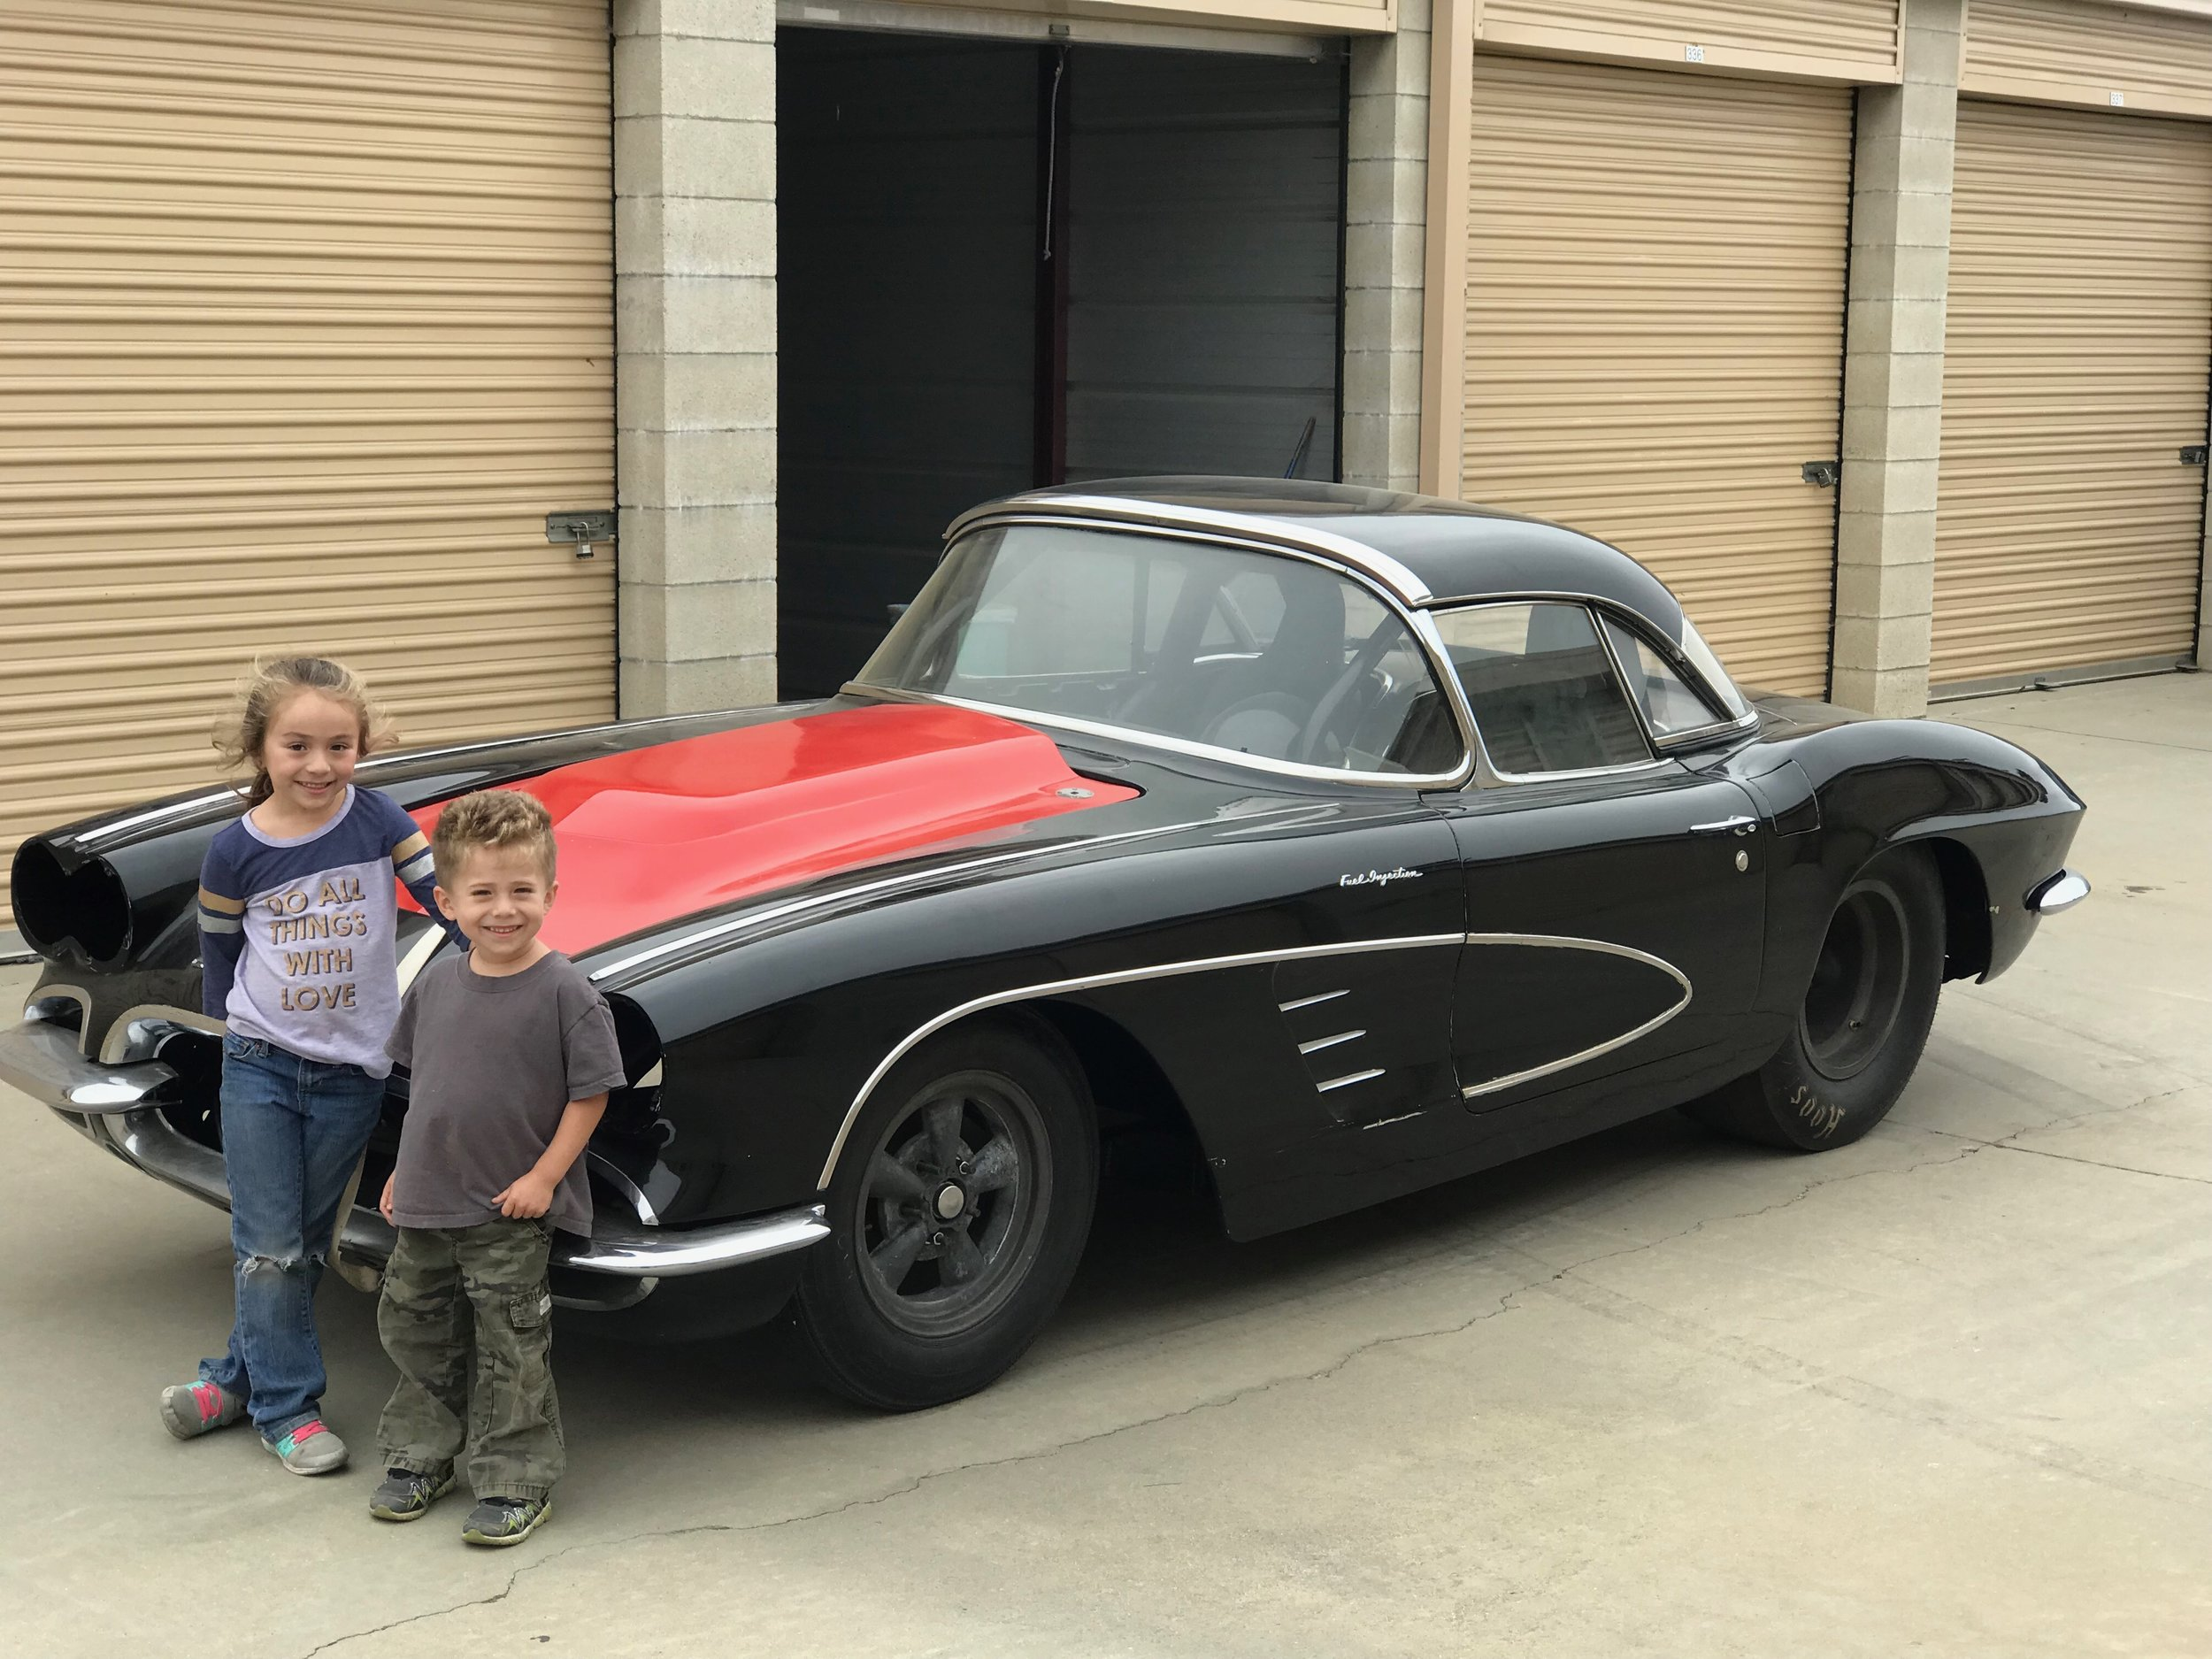 Gil's kids love the Corvette too